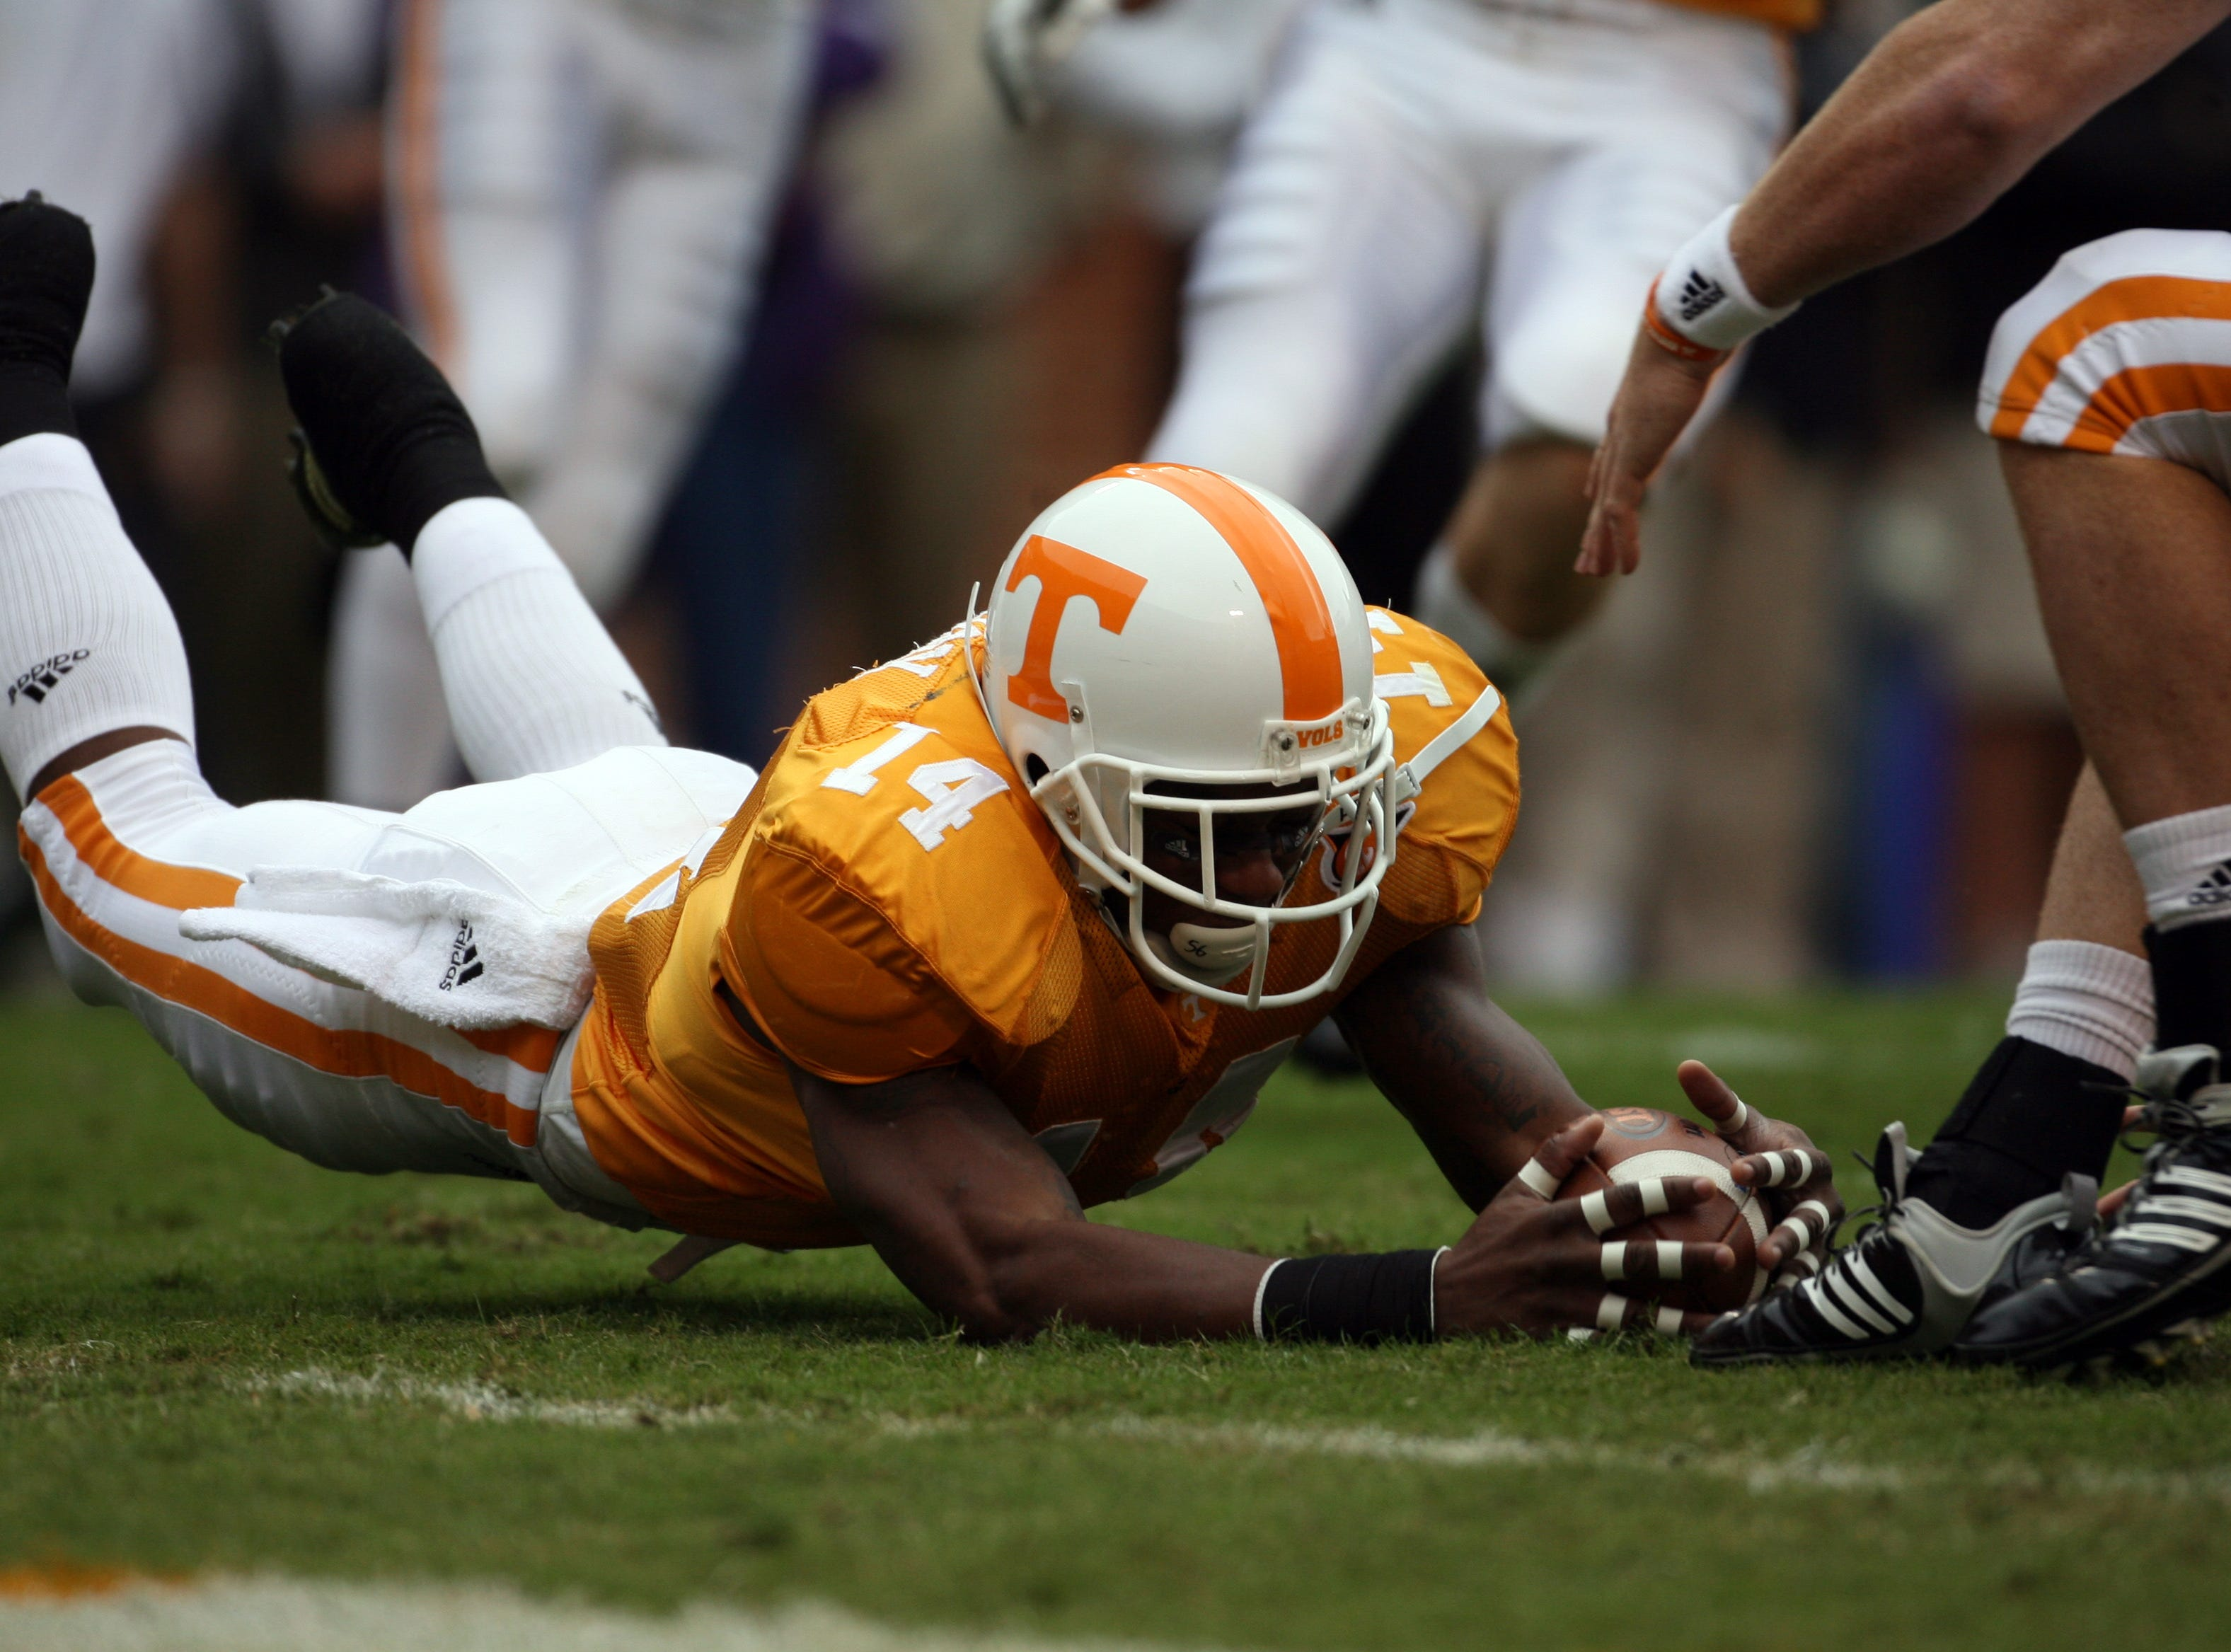 Tennessee cornerback Eric Berry (14) grounds a punt on the Georgia one yard line on Saturday, Oct. 10, 2009 at Neyland Stadium.